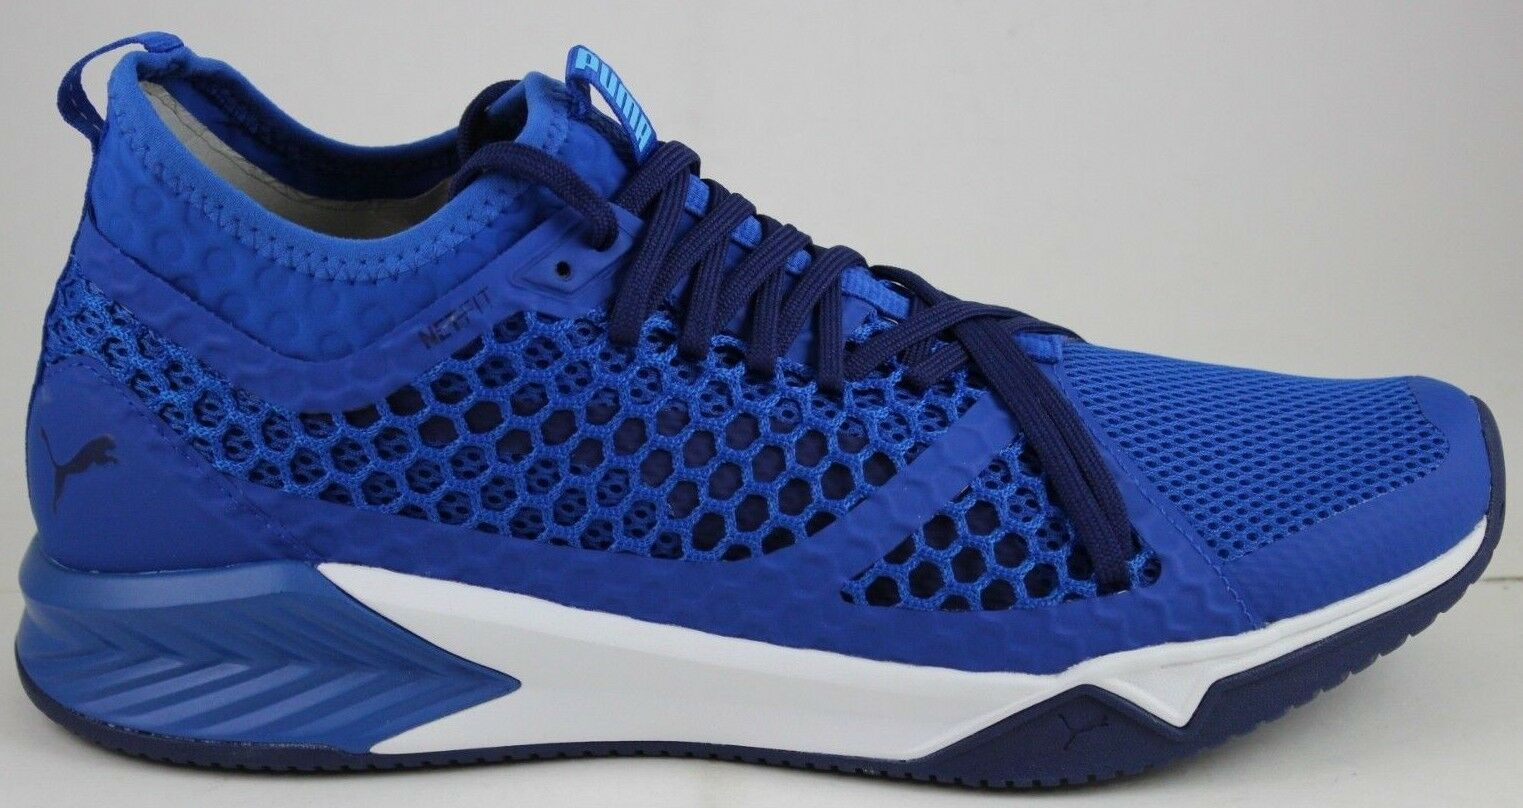 Puma Men's Ignite XT NETFIT 190057 02 Lapis bluee-Puma White New In Box